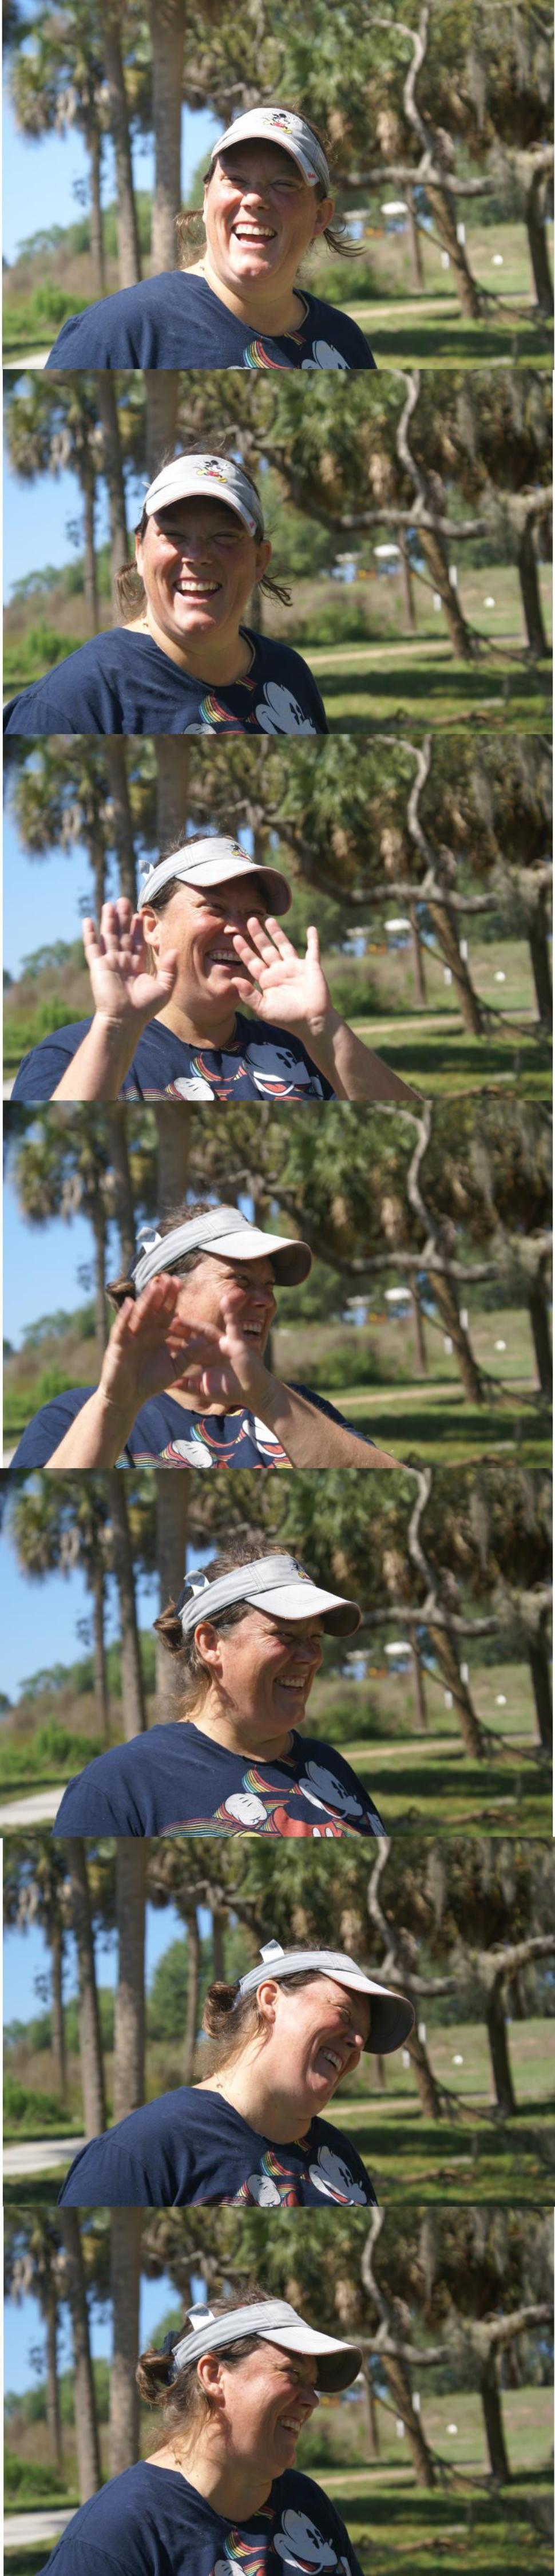 Meet the Instructor: St. Petersburg, Florida, Tina Snook